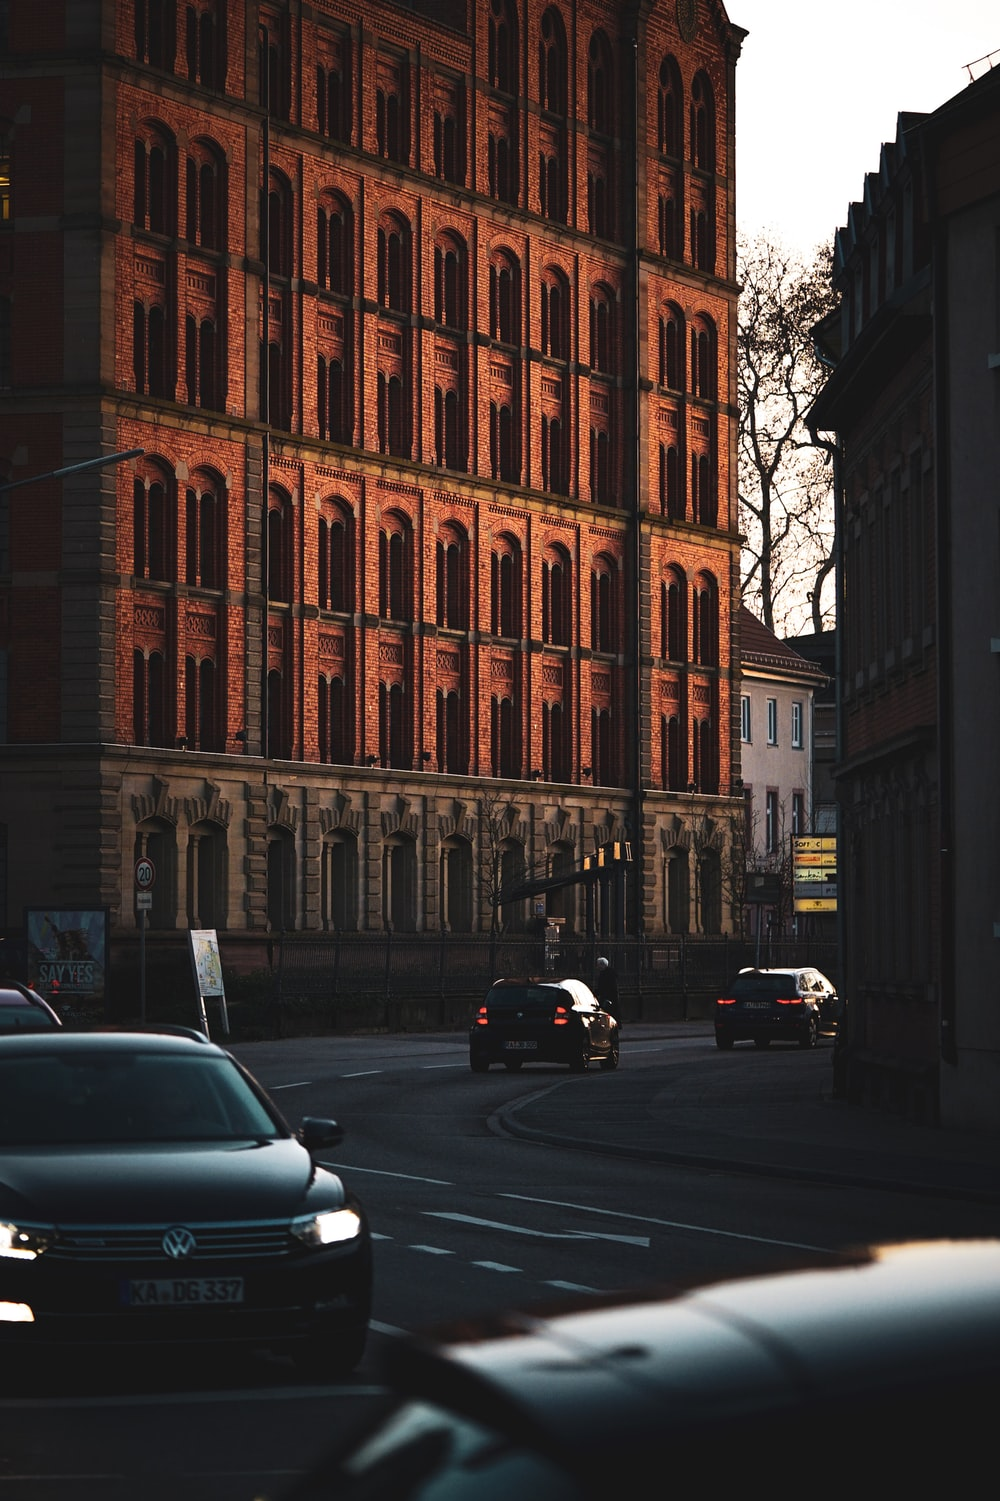 cars traveling on street by the tall brown building